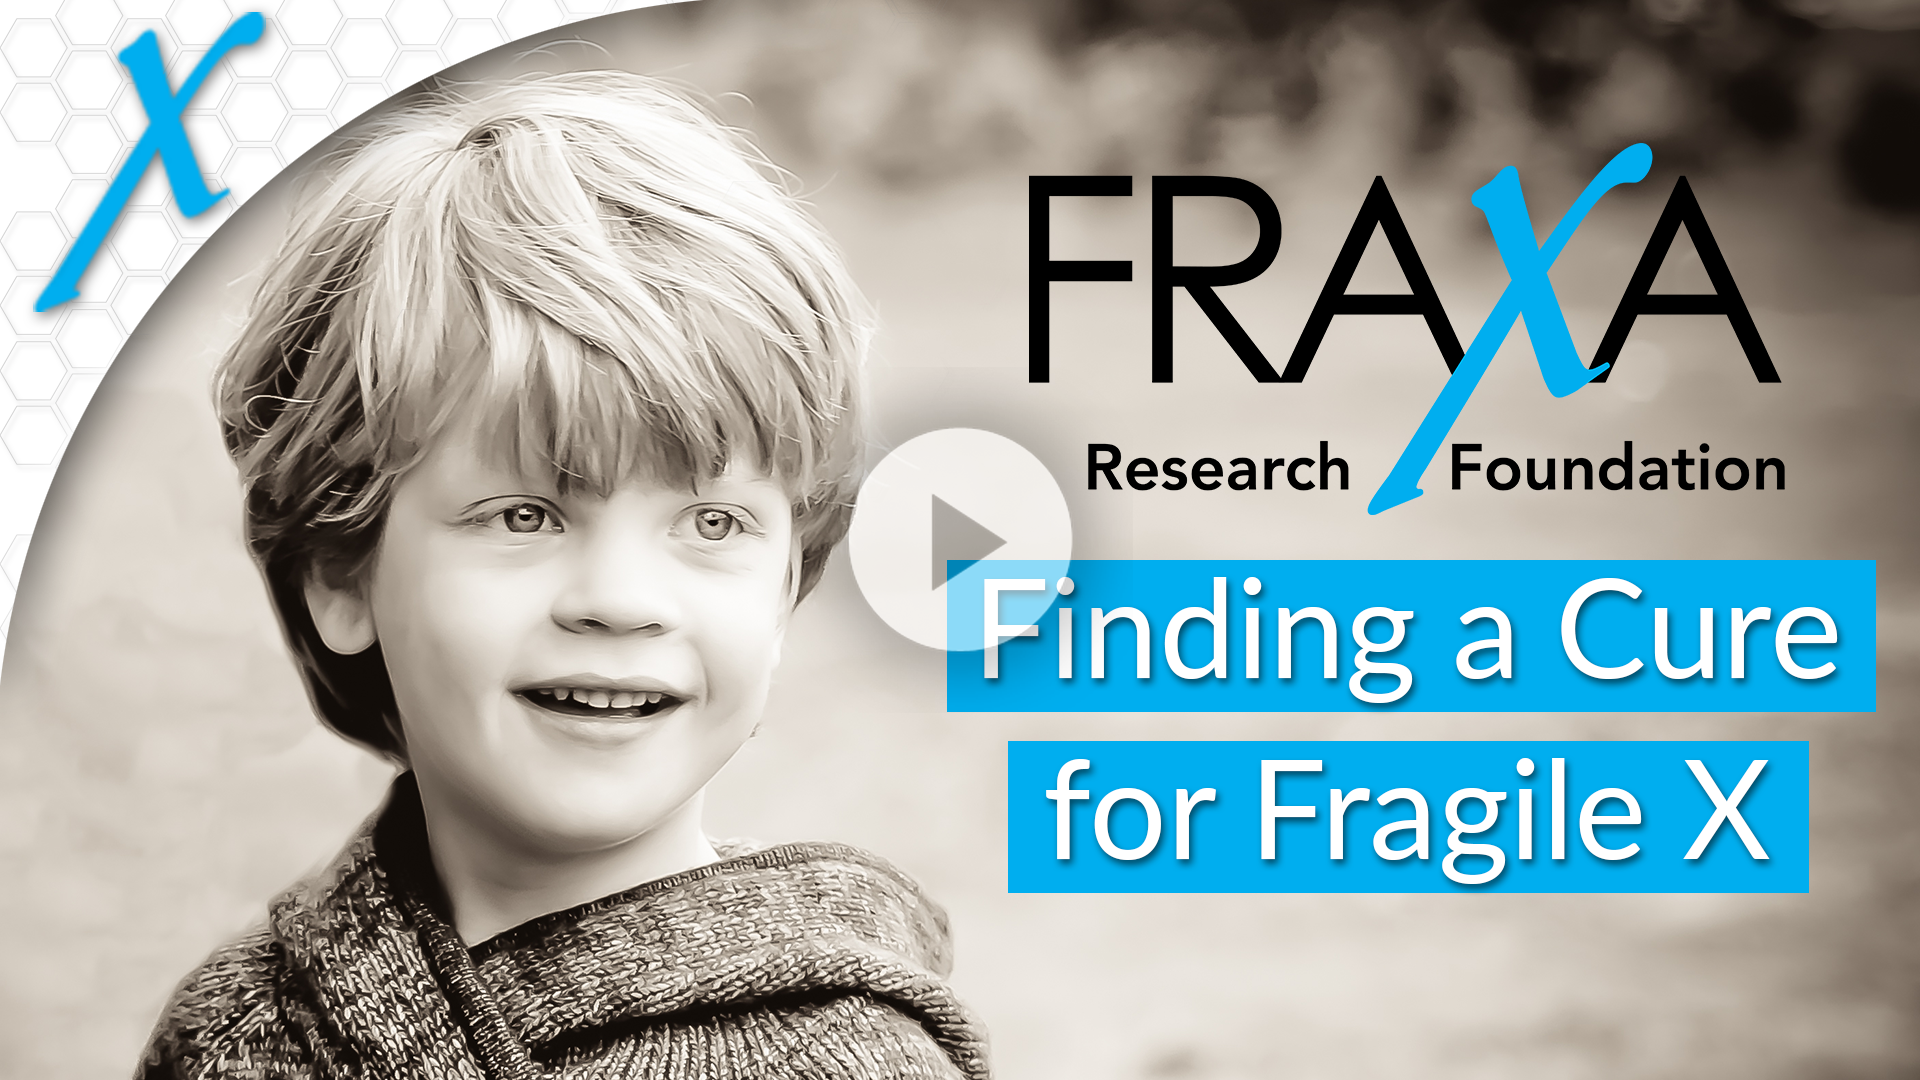 Finding a Cure for Fragile X